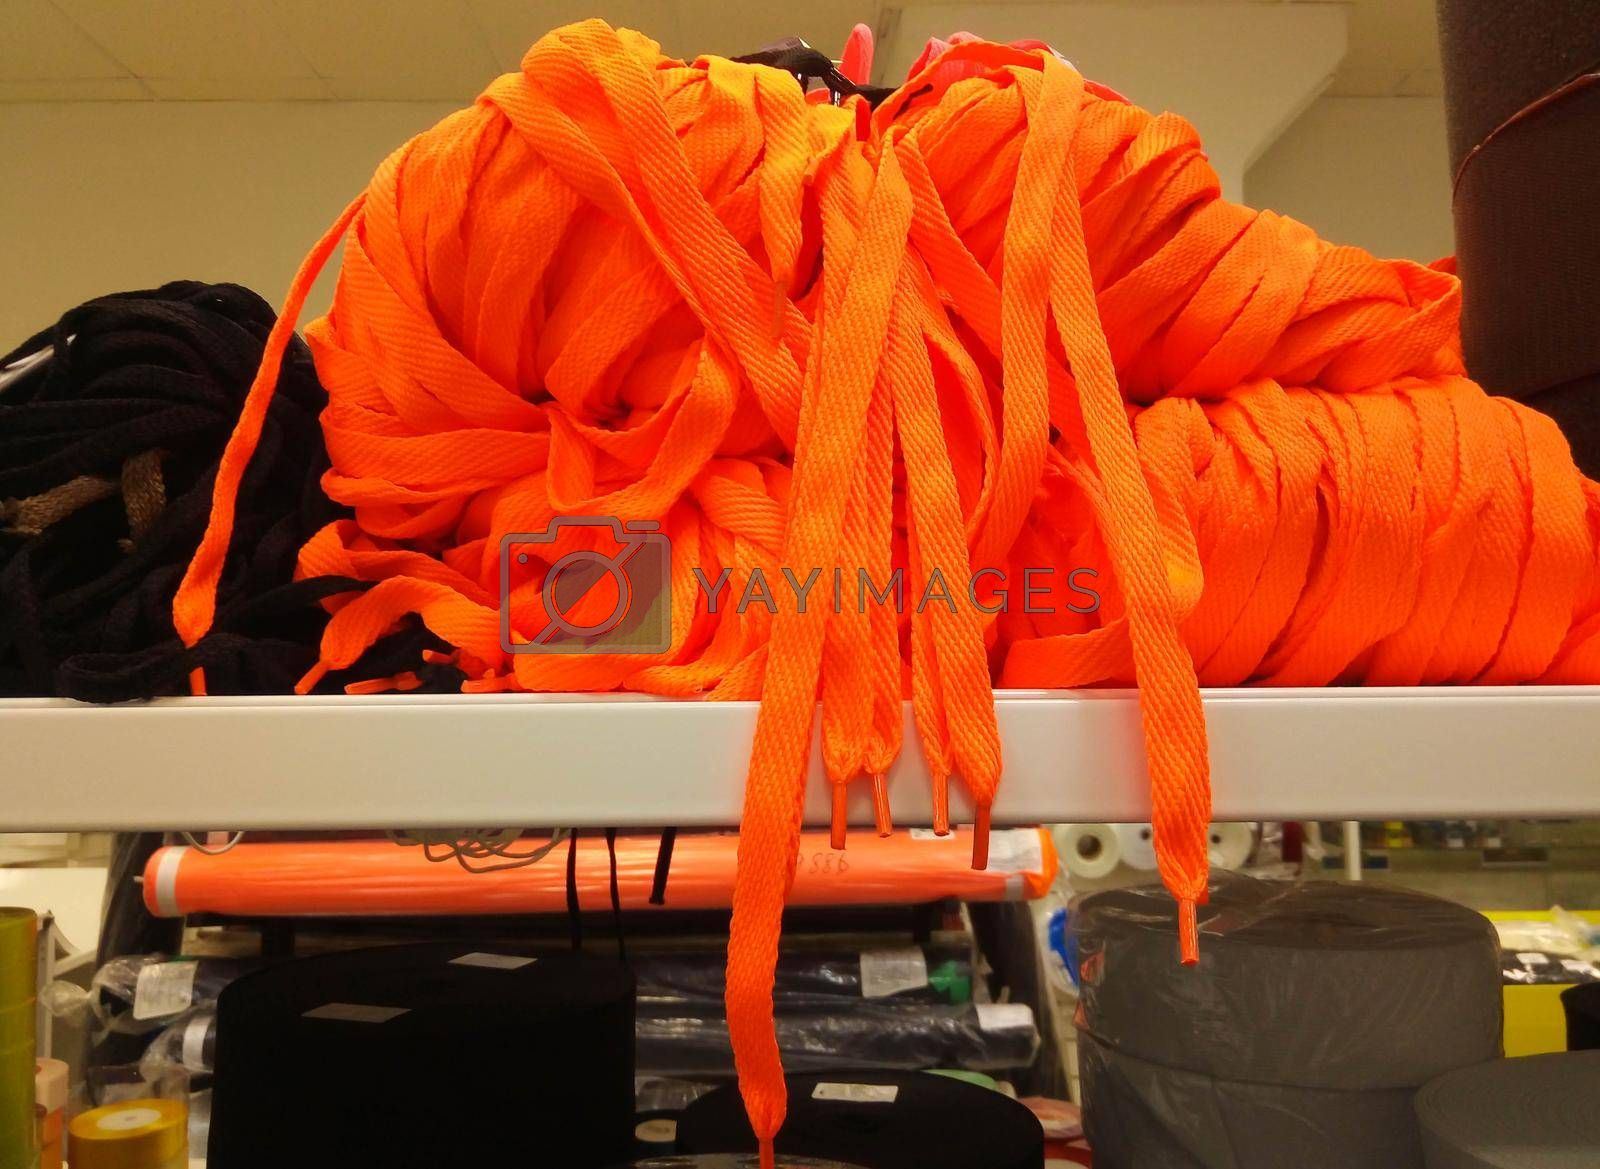 A bunch of orange shoelaces. A bunch of colorful threads for sports shoes, lying on a shelf in the store.